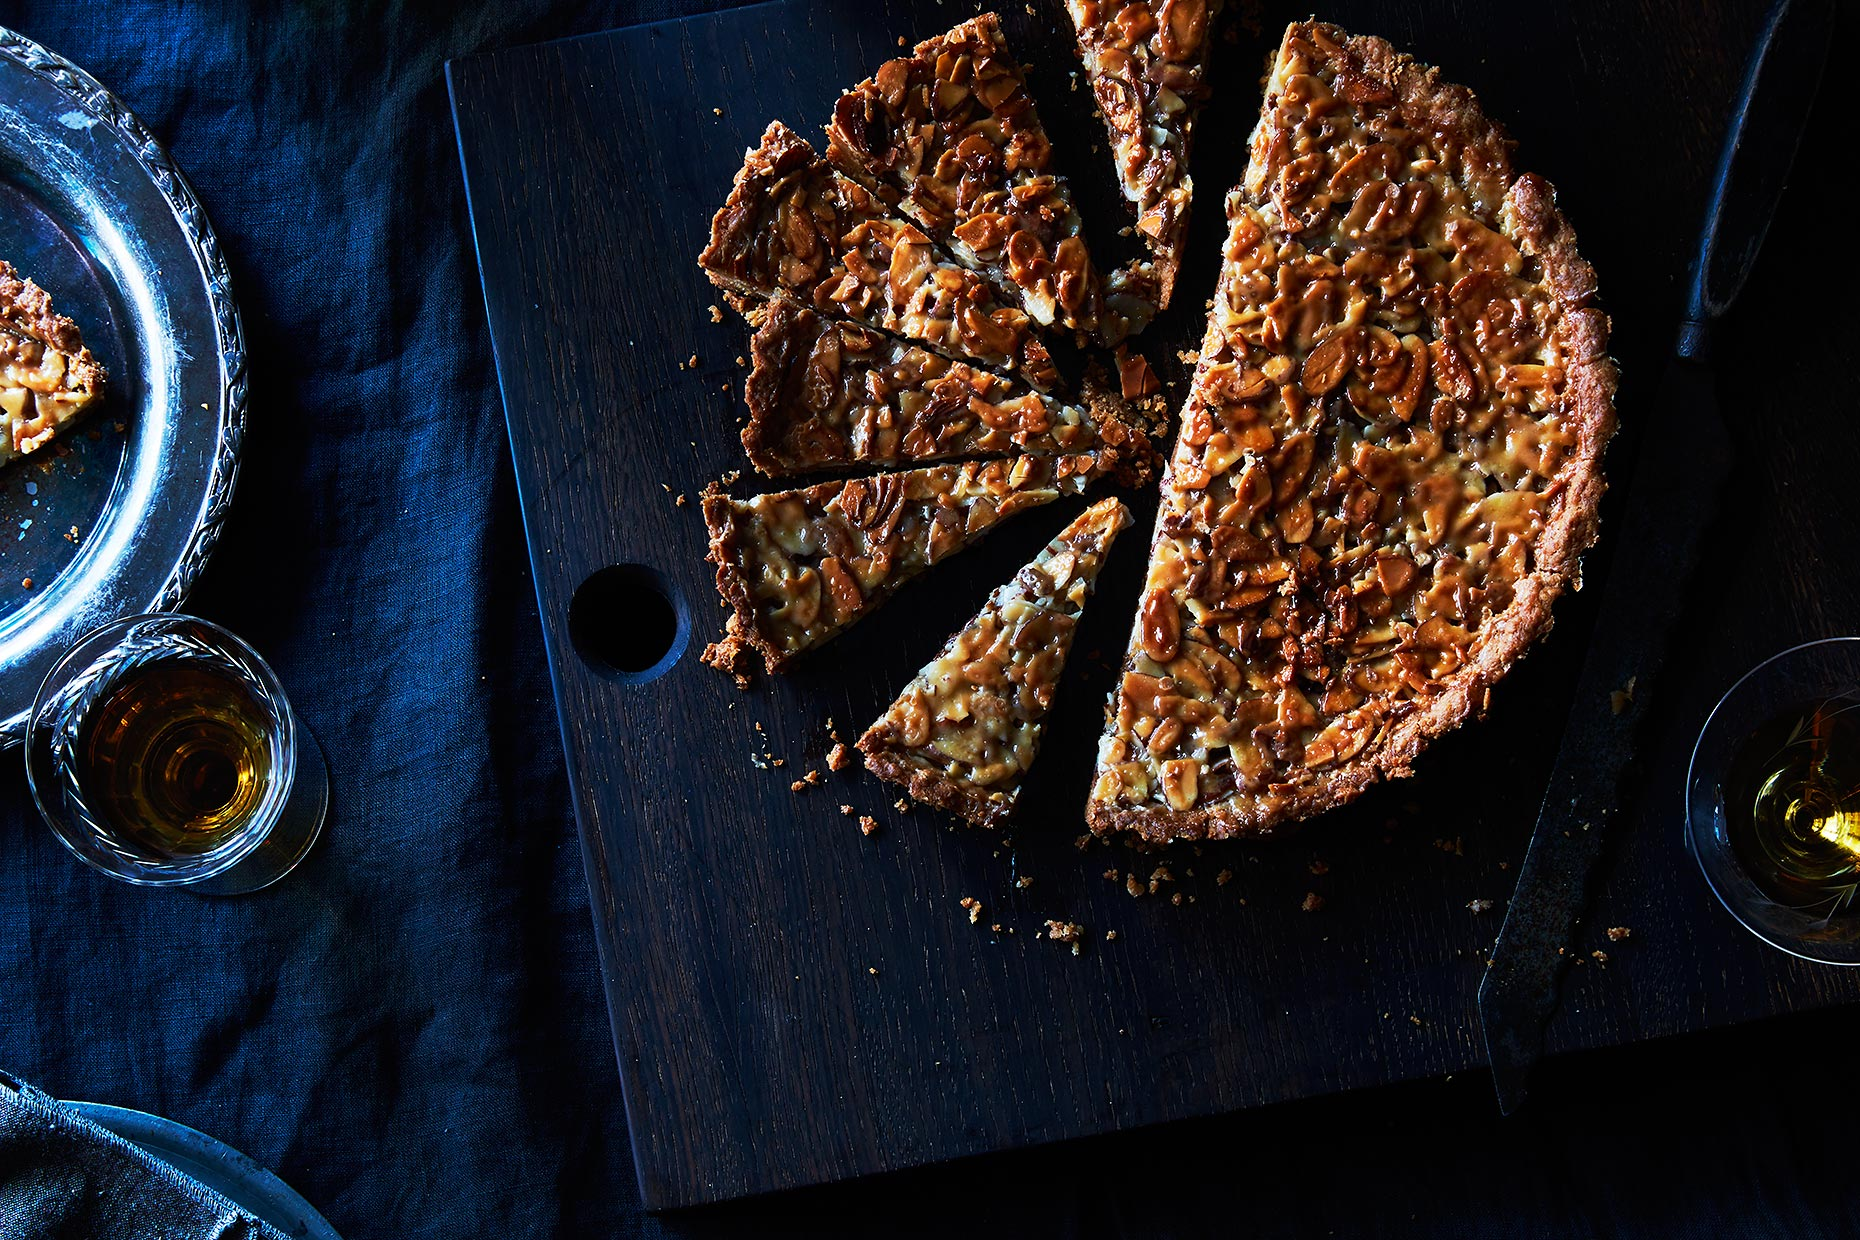 30_2016-1122_chez-panisse-almond-tart_james-ransom-471